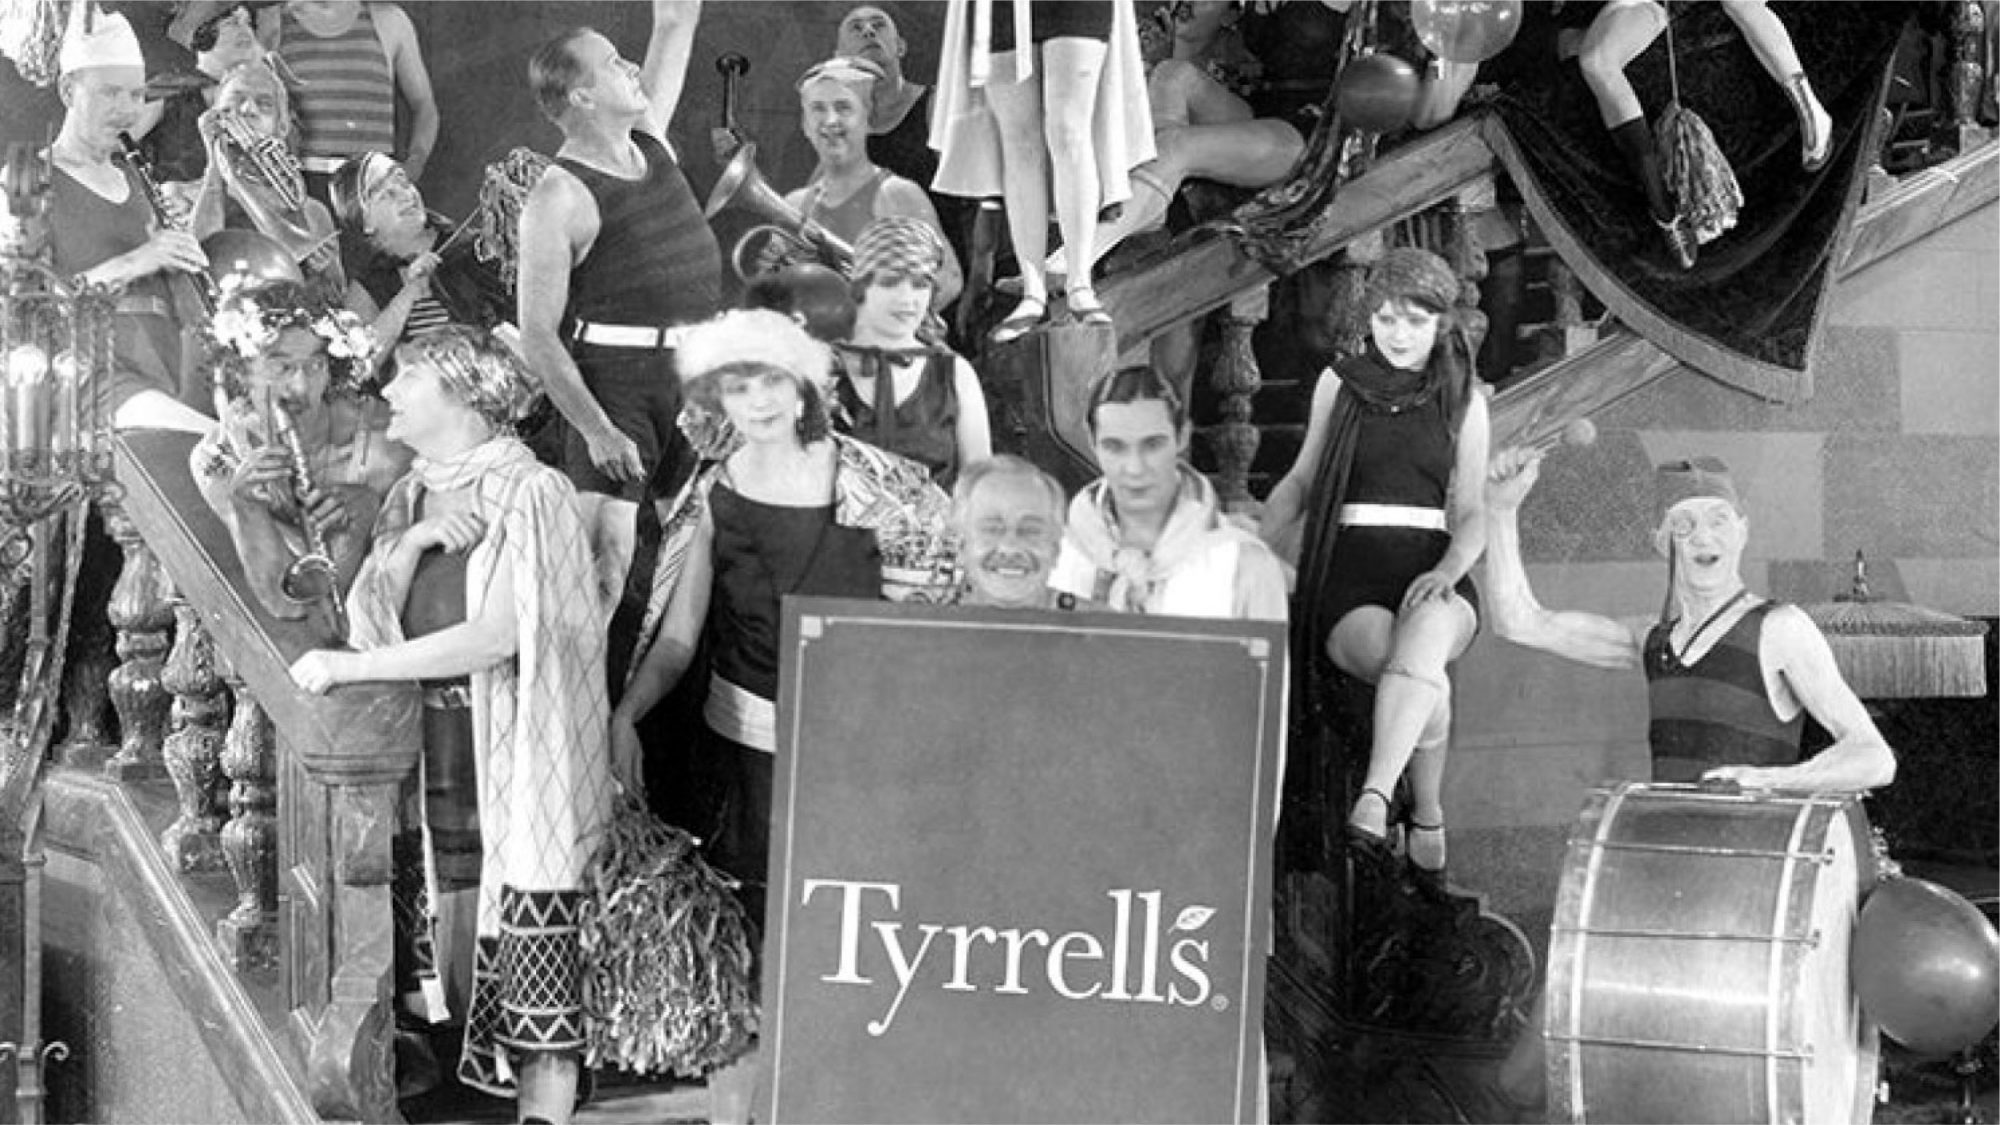 Tyrrells Crowd